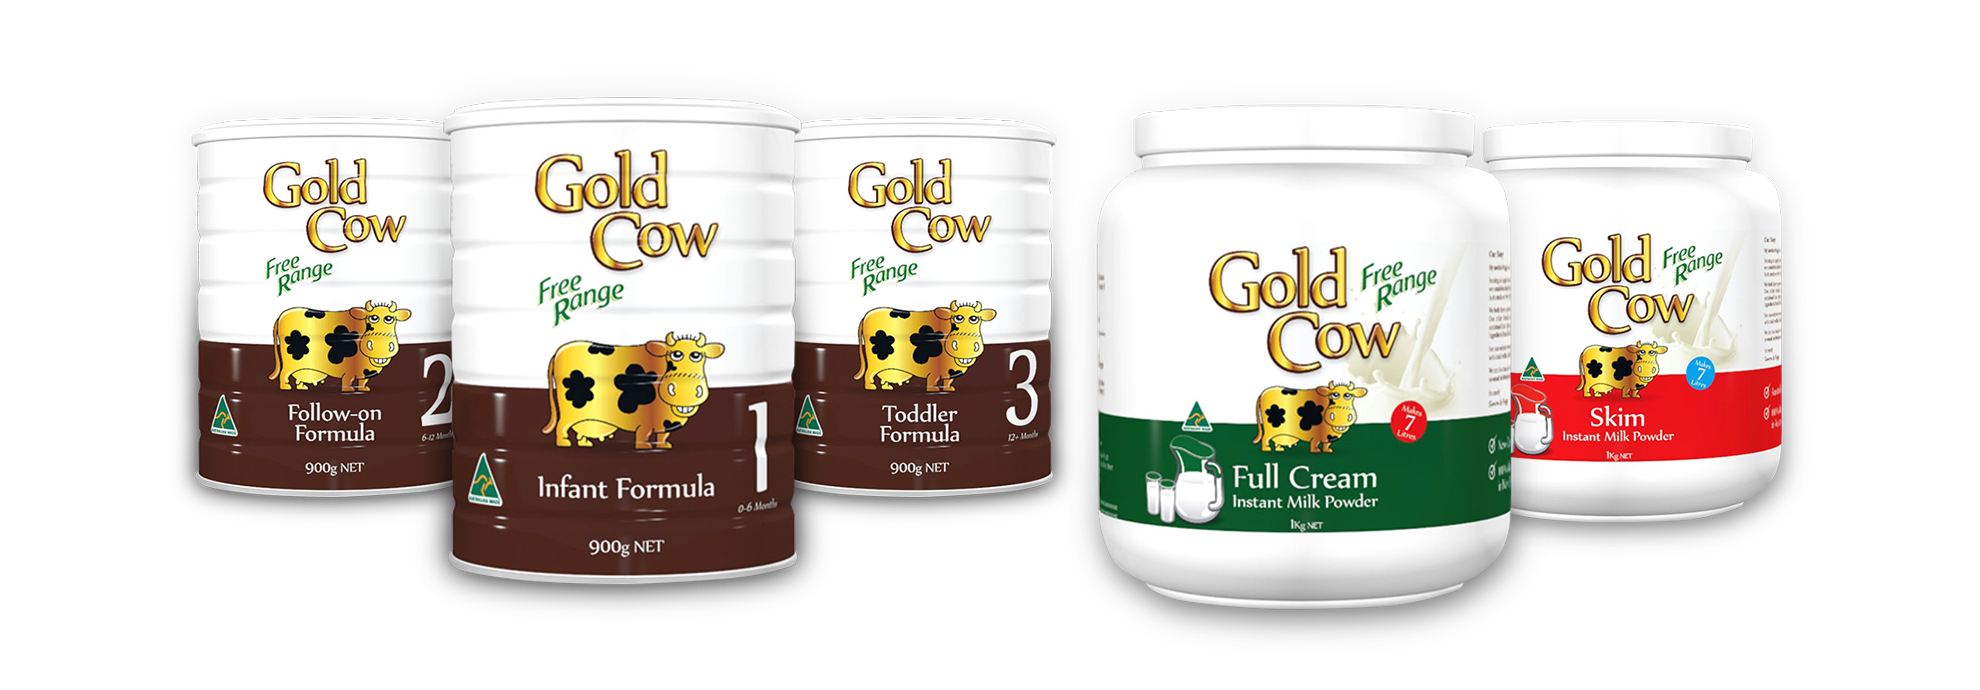 Gold Cow Milk Powder